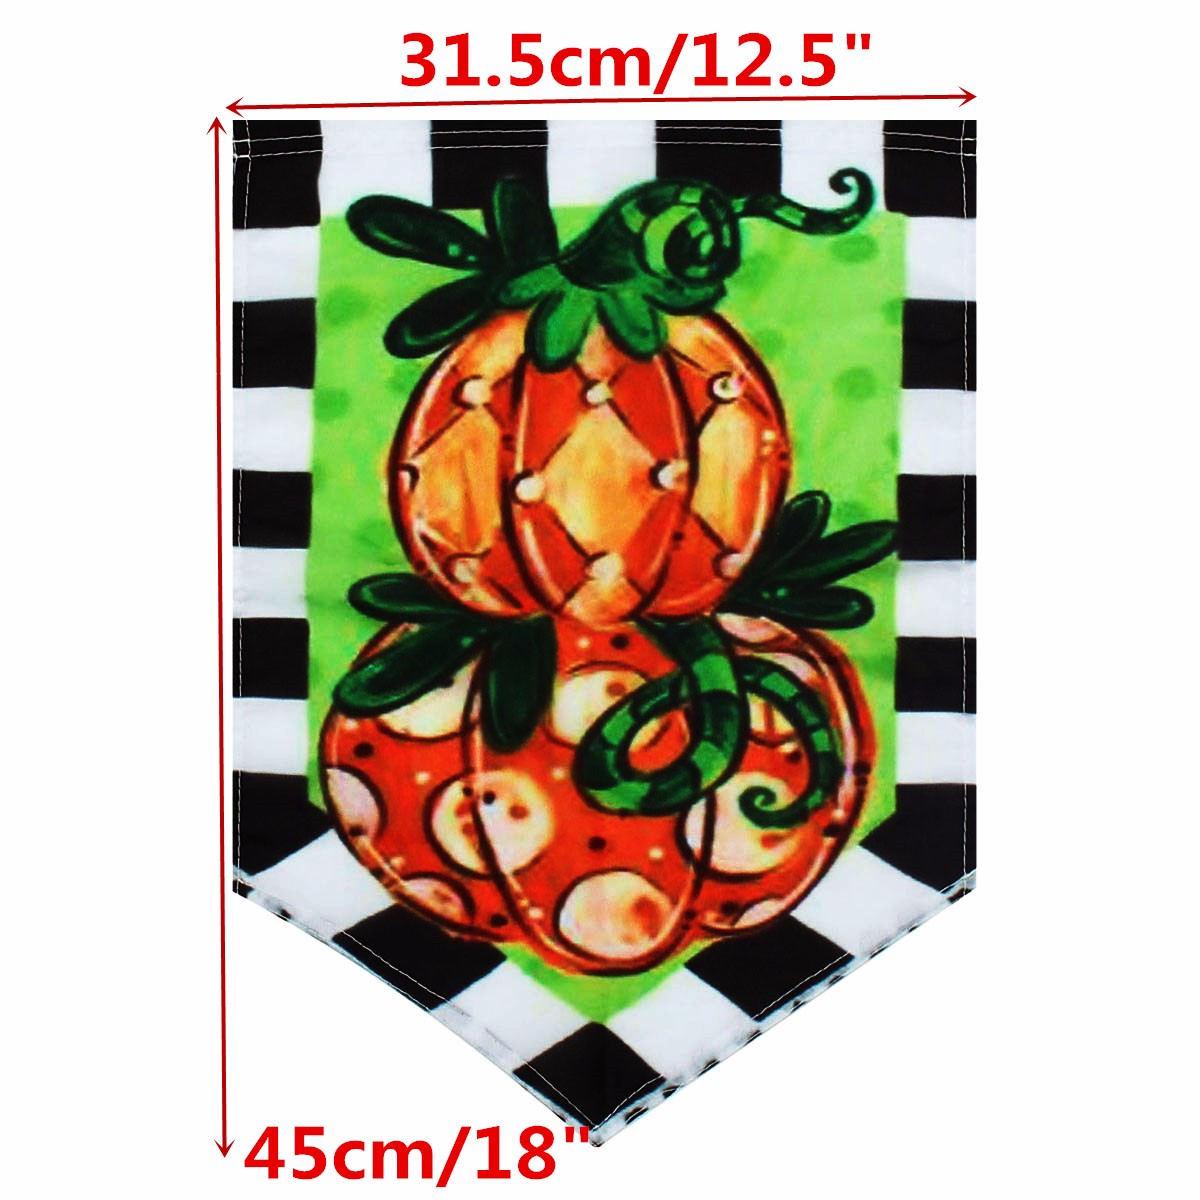 12.5''x18'' Garden Flag Tom's Pumpkin Topiary Autumn Holiday Fall Yard Banner Decorations